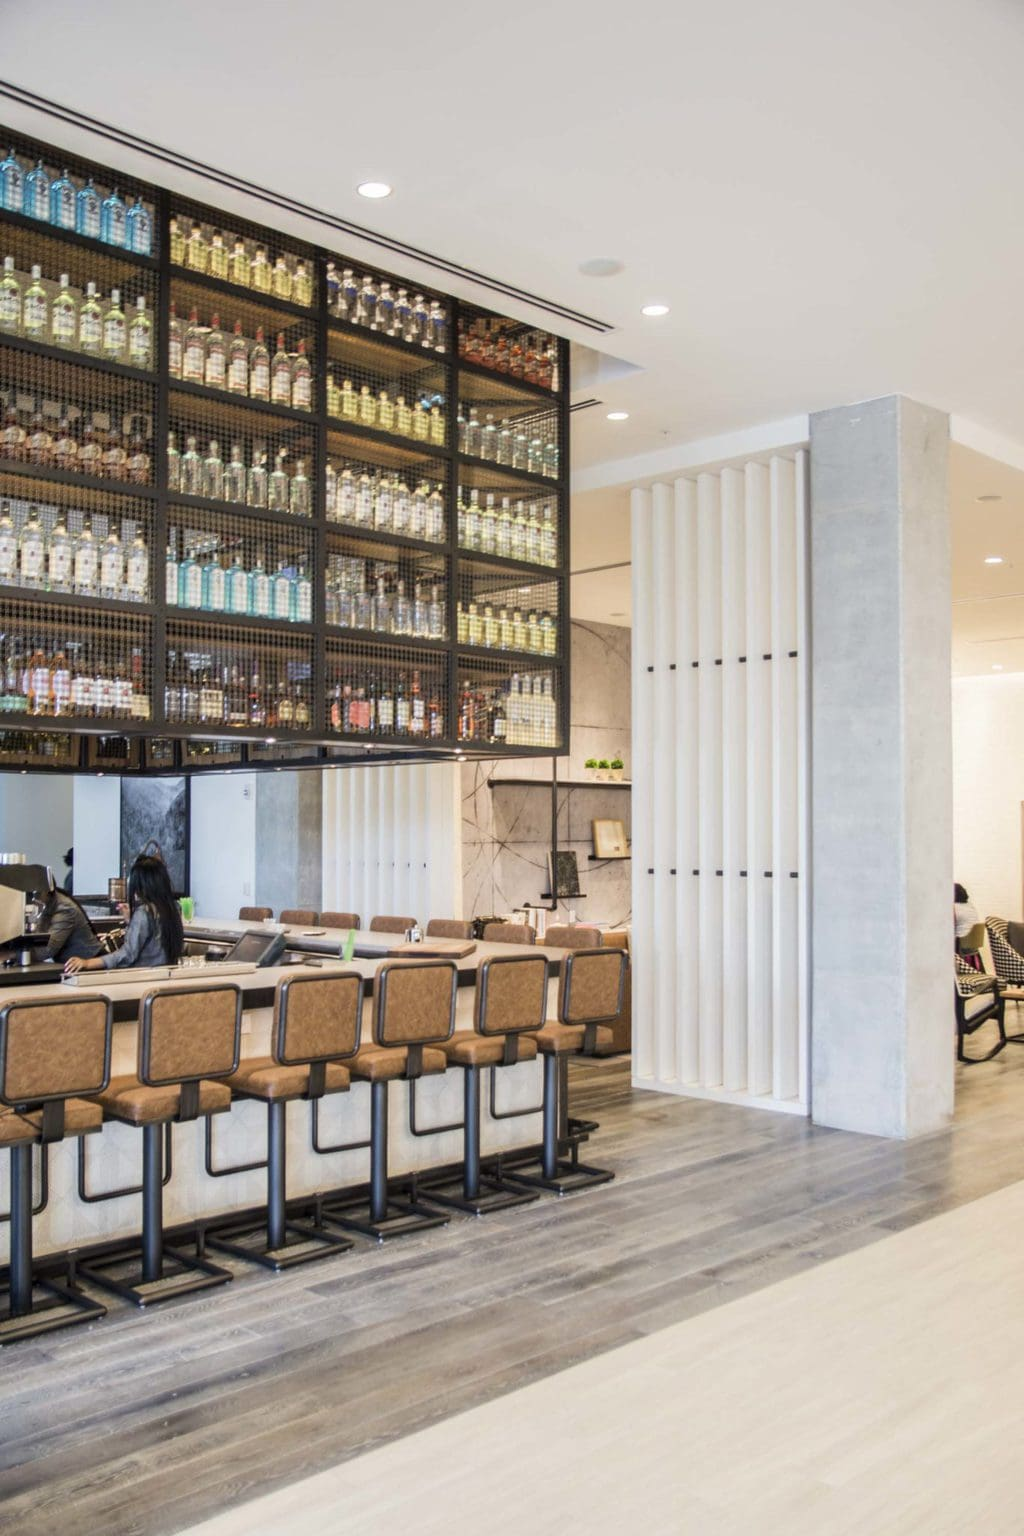 Modern bar design at the Renaissance airport Atlanta hotel on Thou Swell @thouswellblog